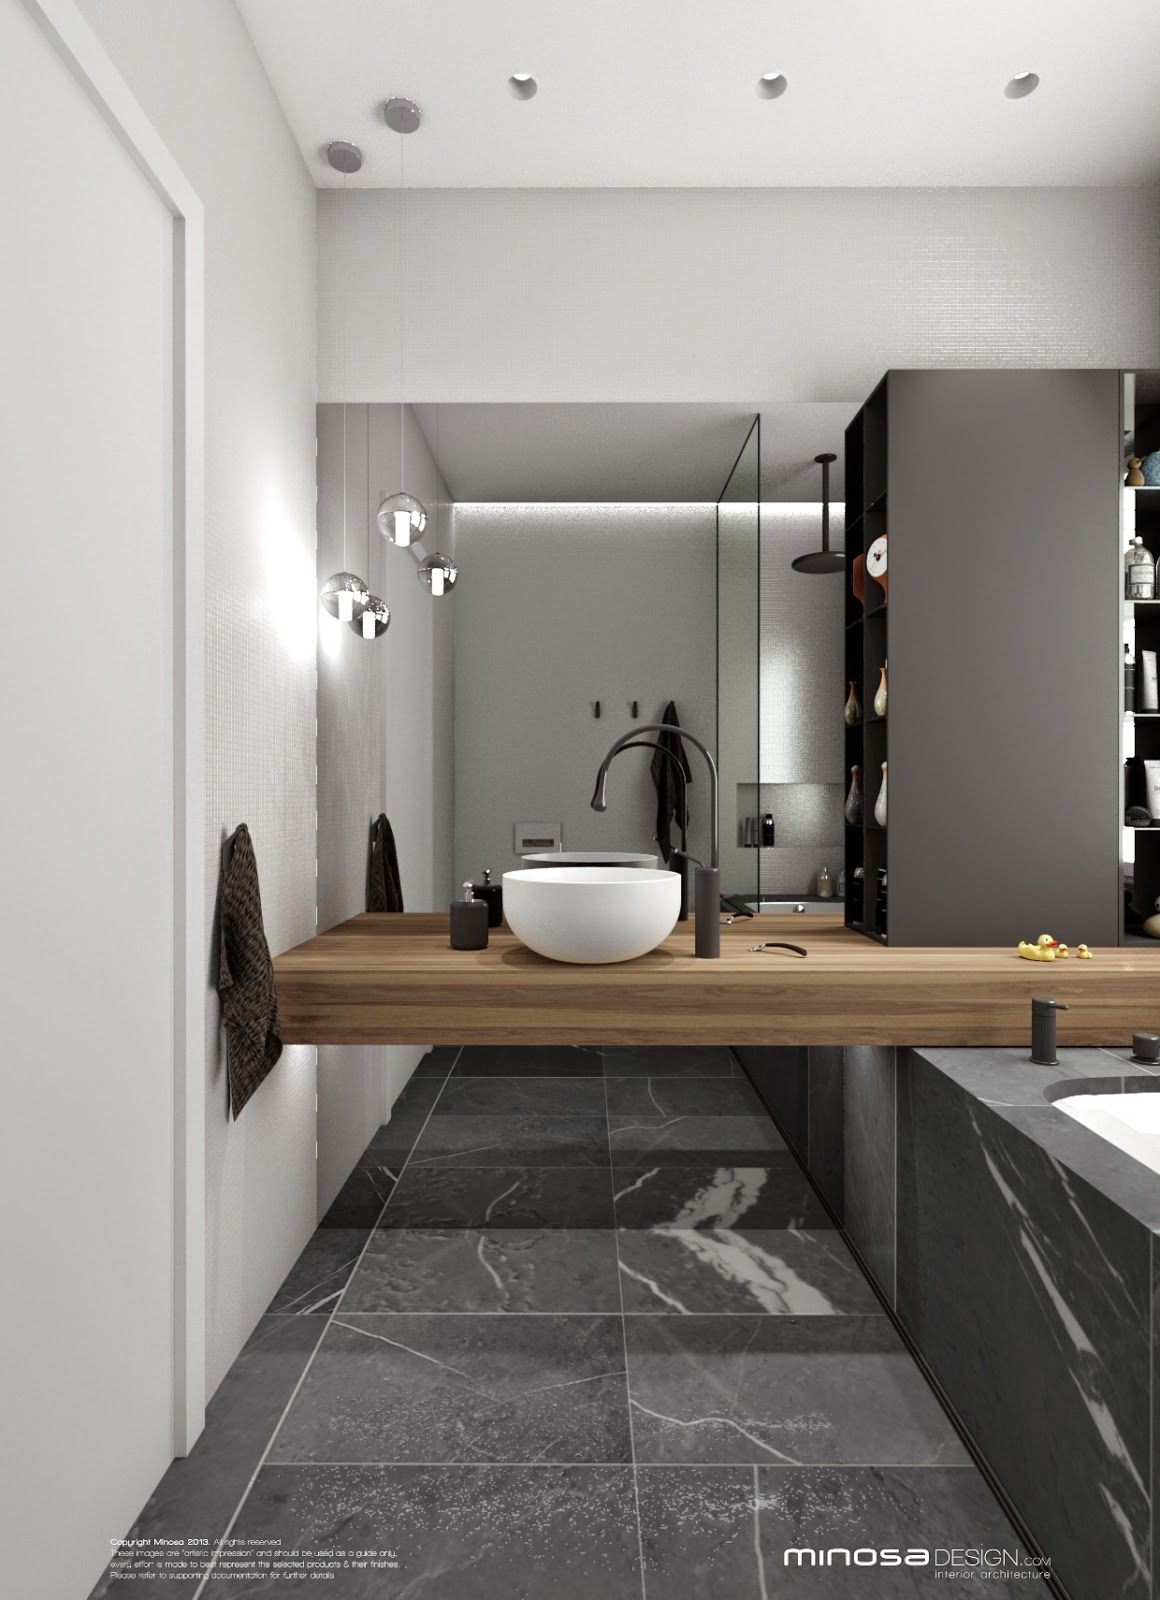 Kids Bathroom Interior Design For Commercial Spaces: Small Space Feels Large